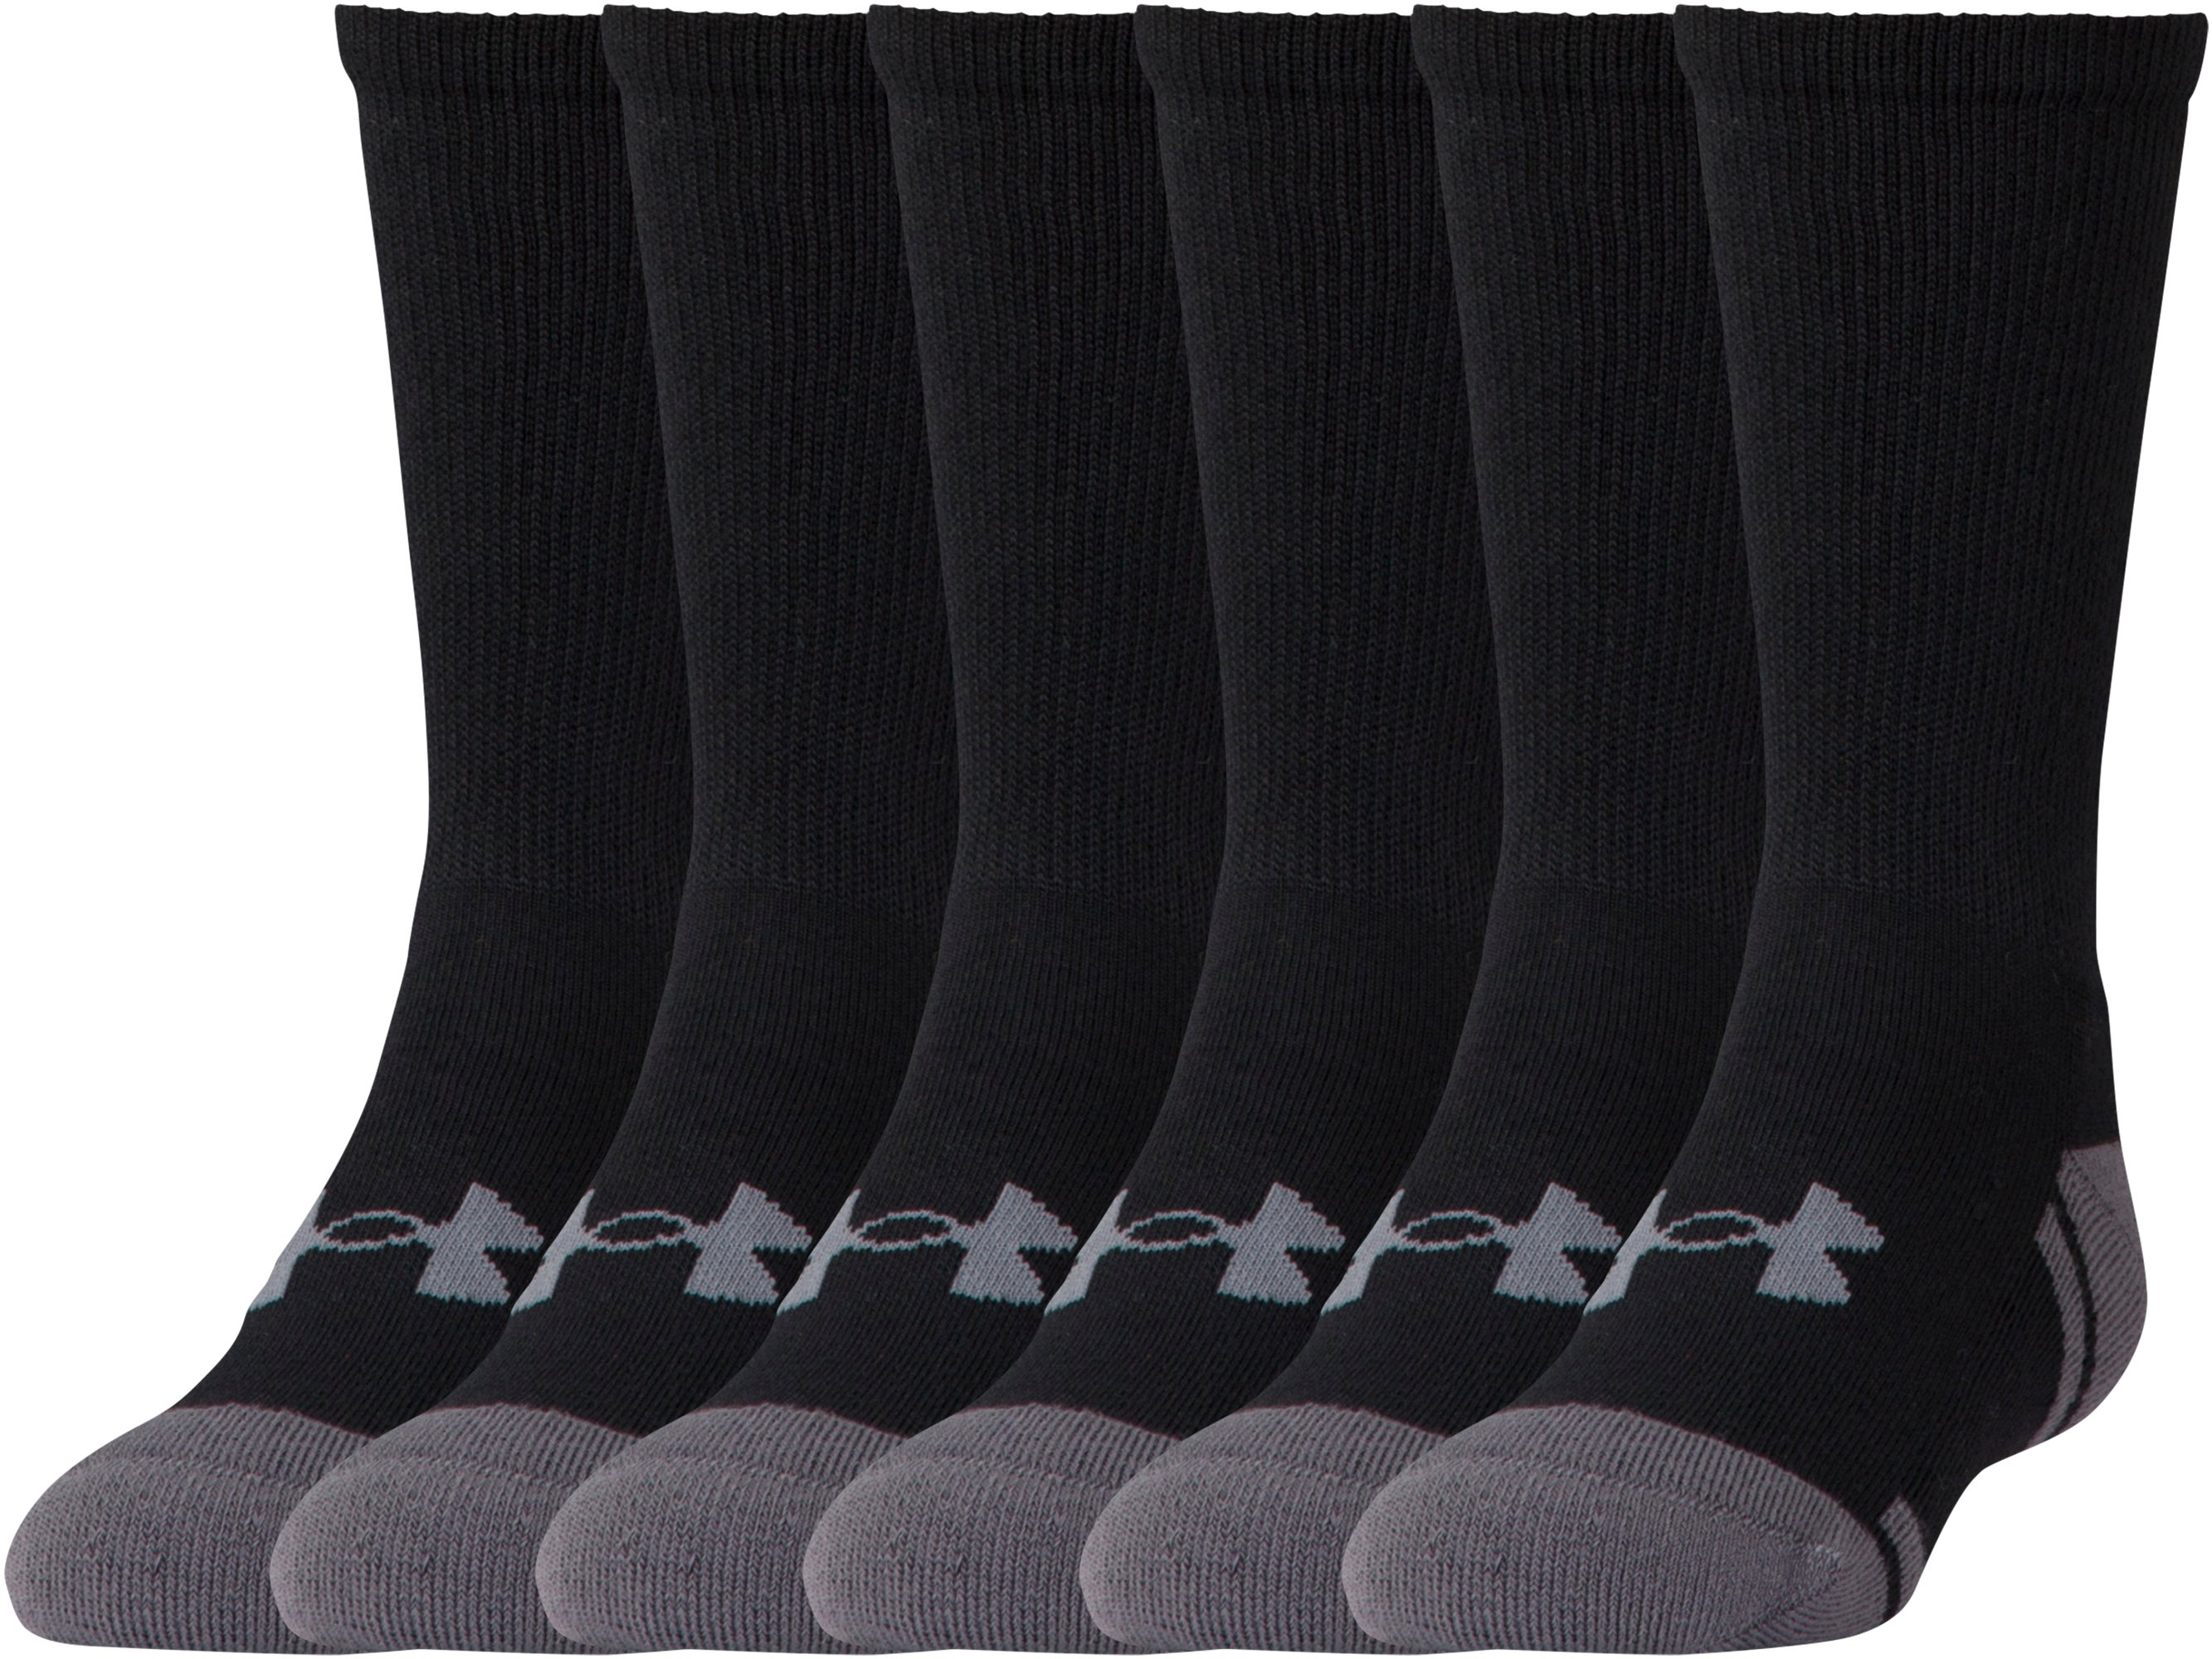 Boys' UA Resistor III Crew Socks – 6-Pack, Black